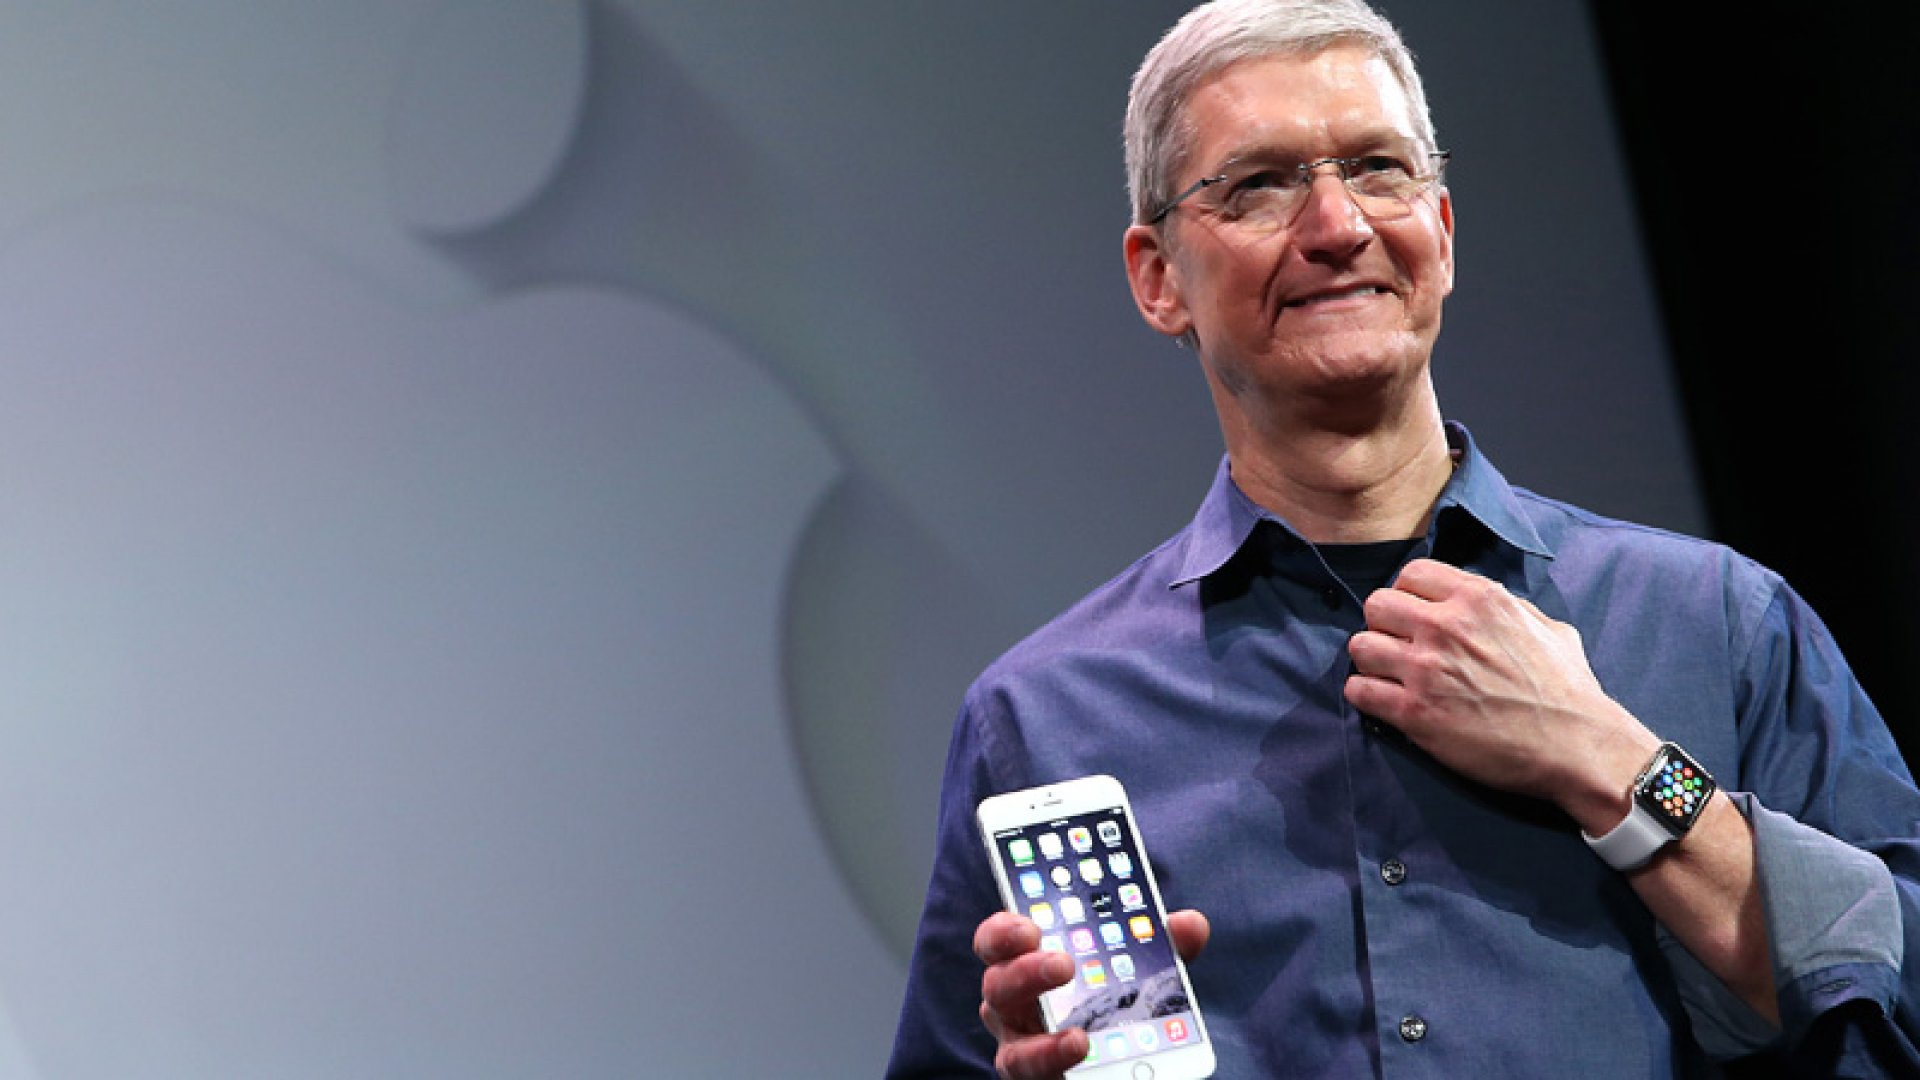 Why Apple CEO Tim Cook Makes $64 Million Less Than the Company's Retail Boss